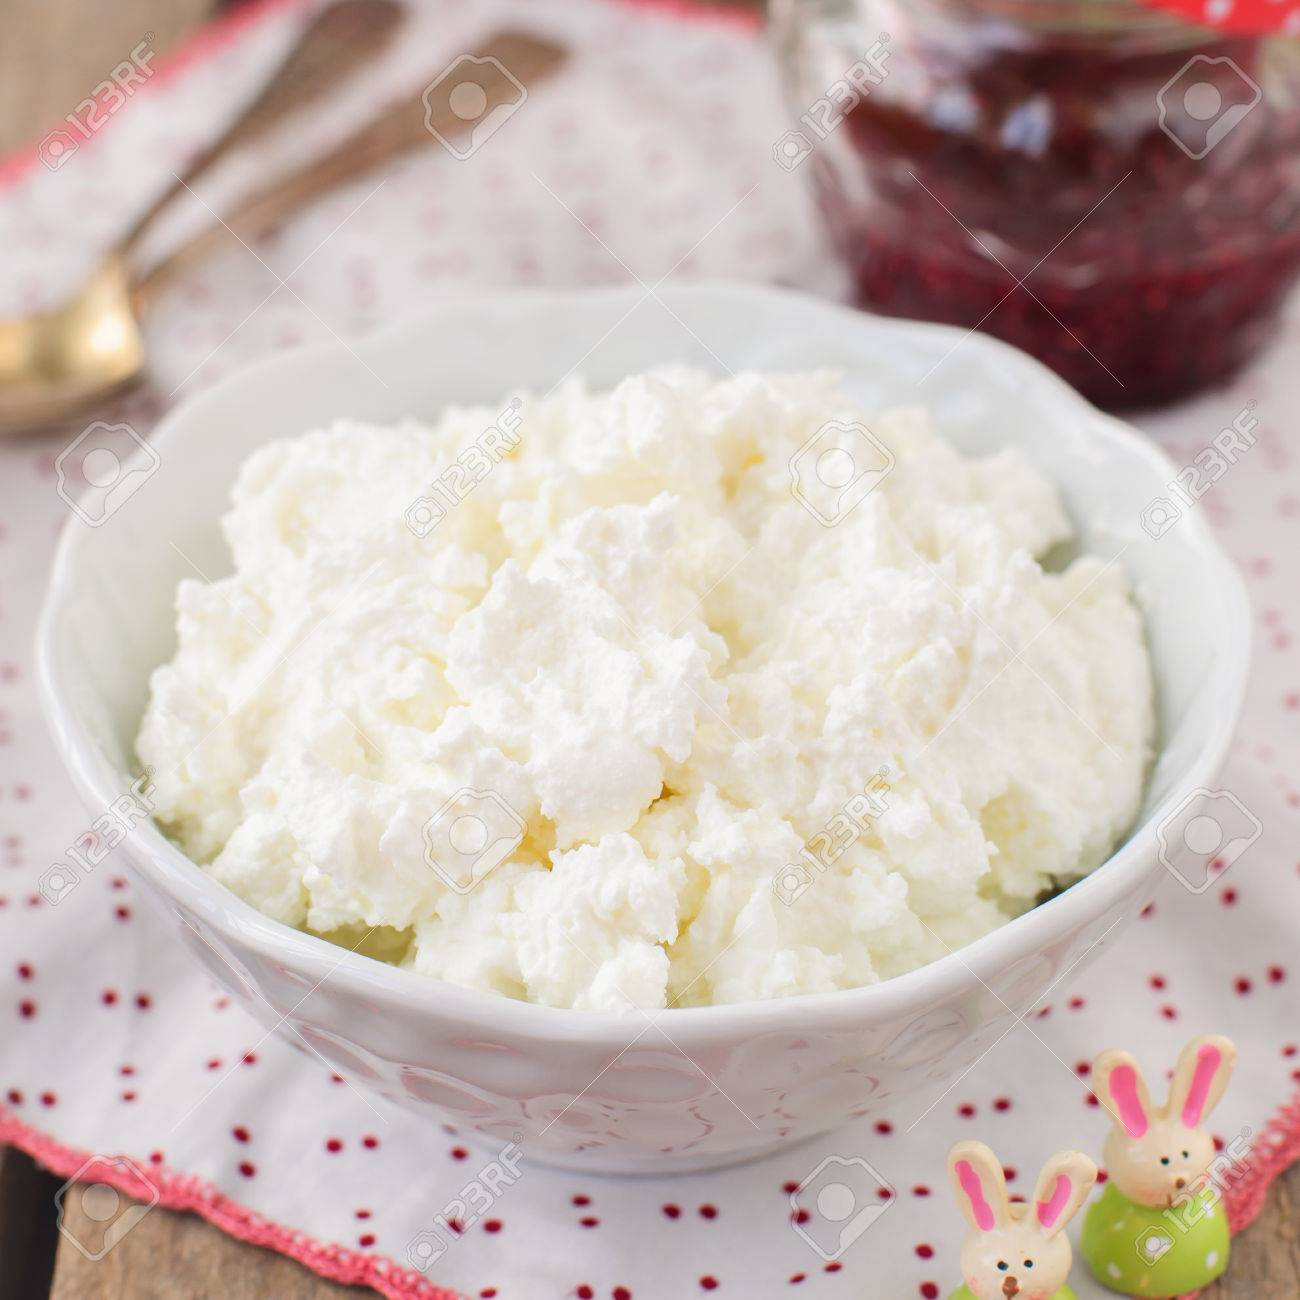 Homemade Cottage Cheese Quark, Cream Cheese, Curd In A White Bowl With  Raspberry Jam